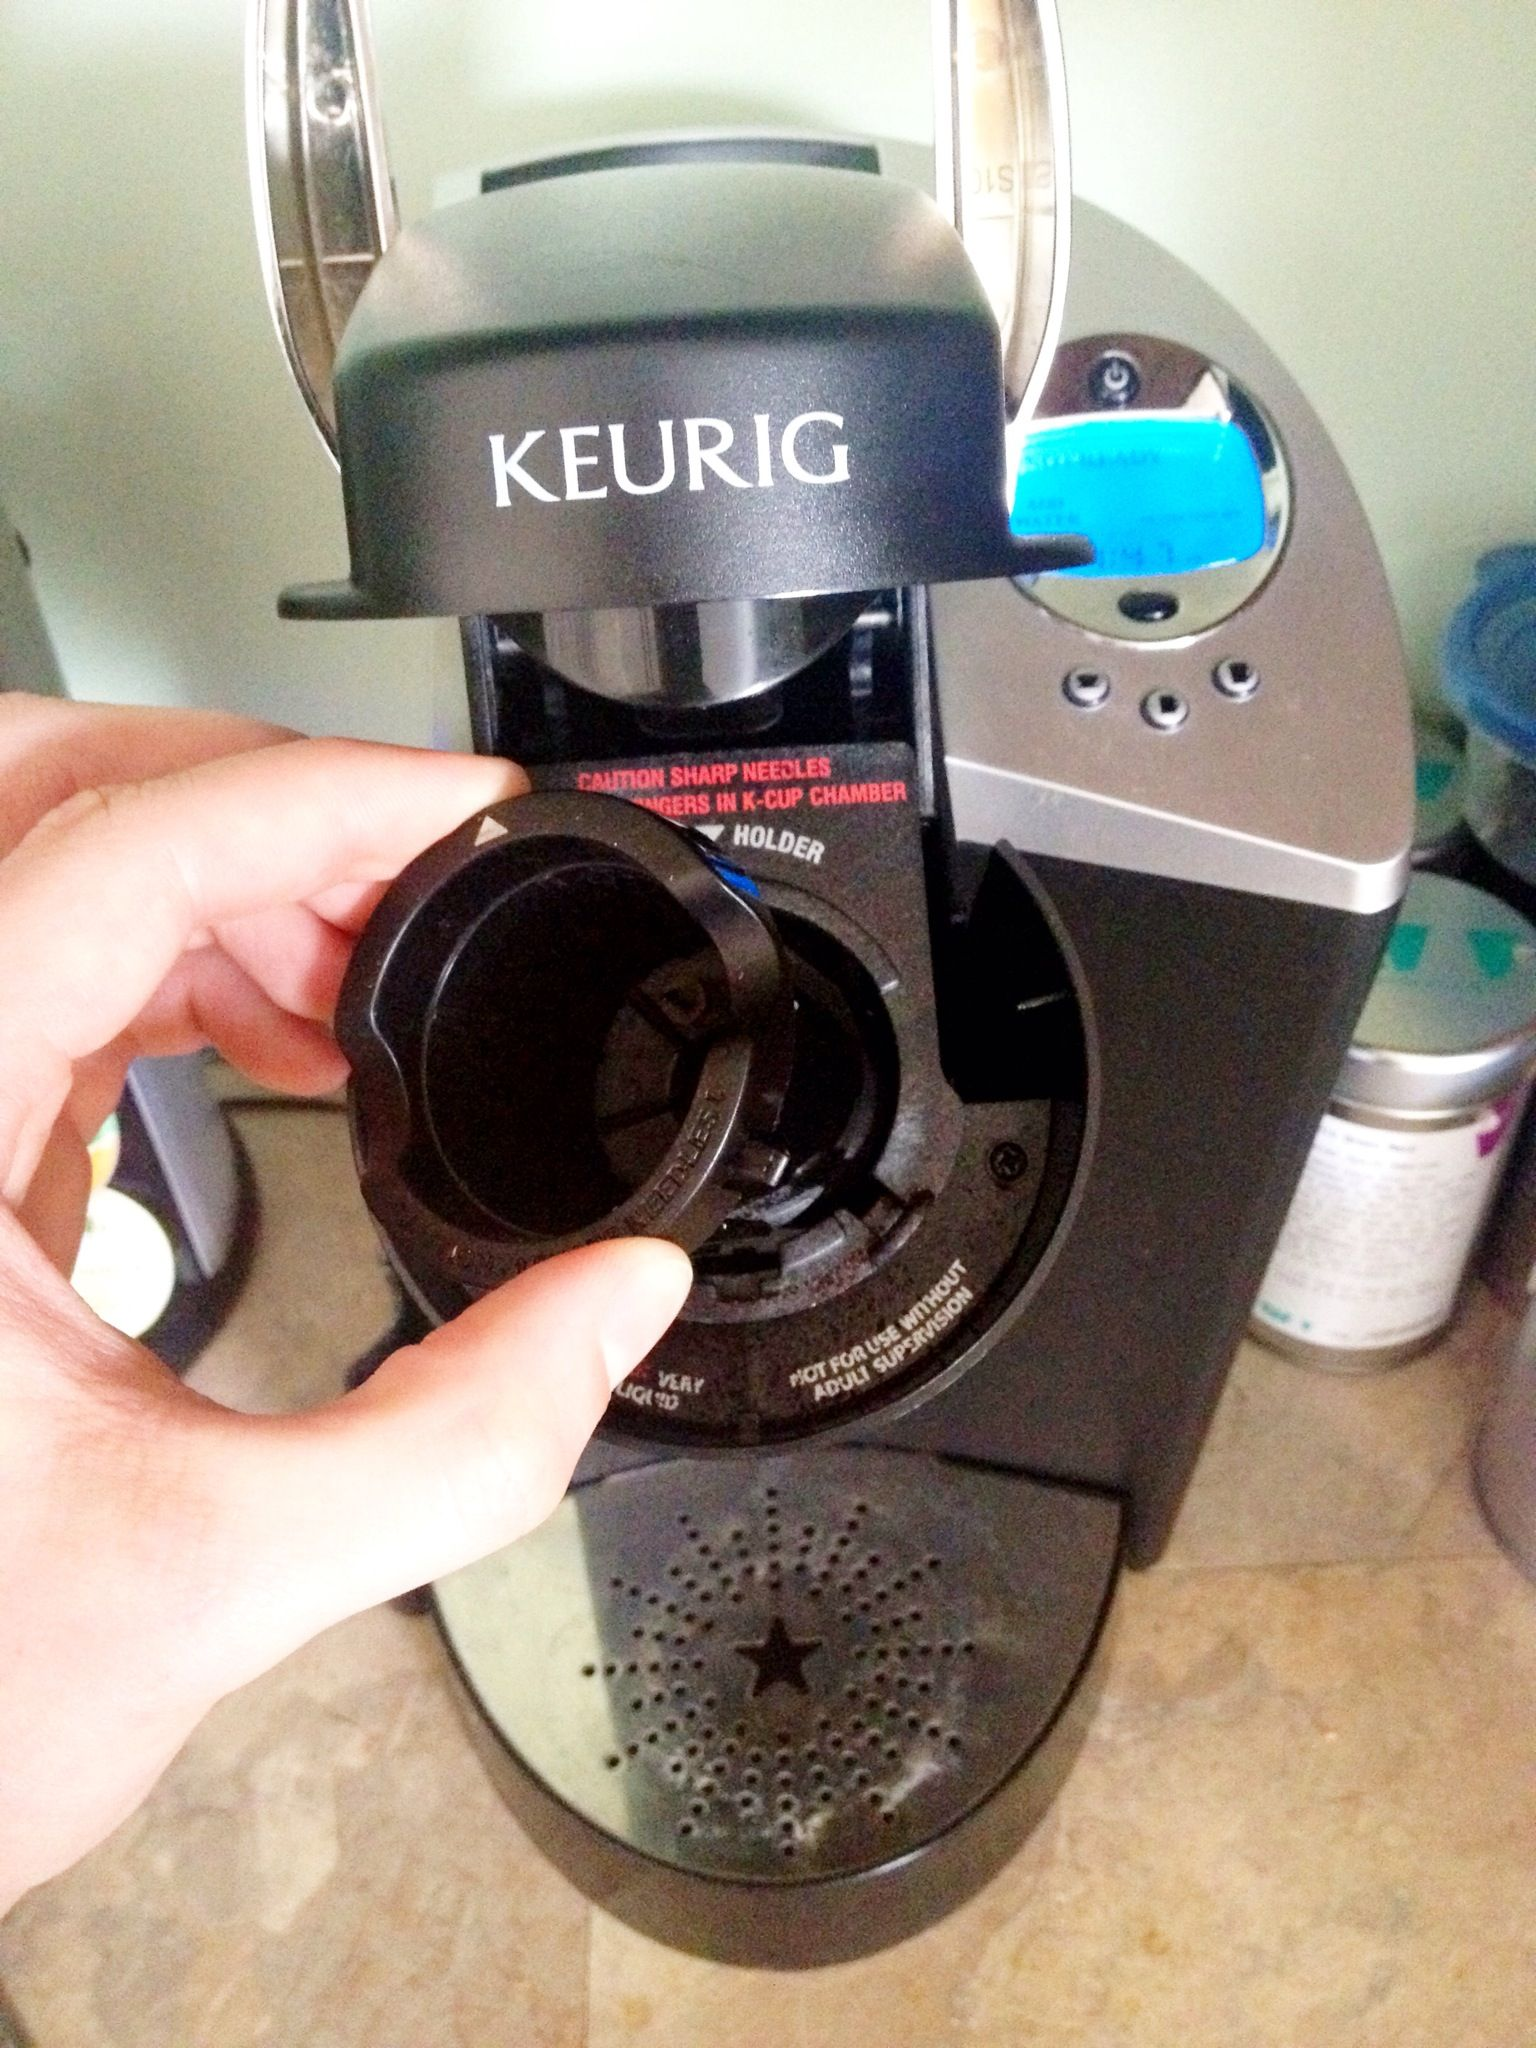 How To Descale Clean Your Keurig Brewer Recipe Keurig Cleaning Cleaning Hacks Cleaning